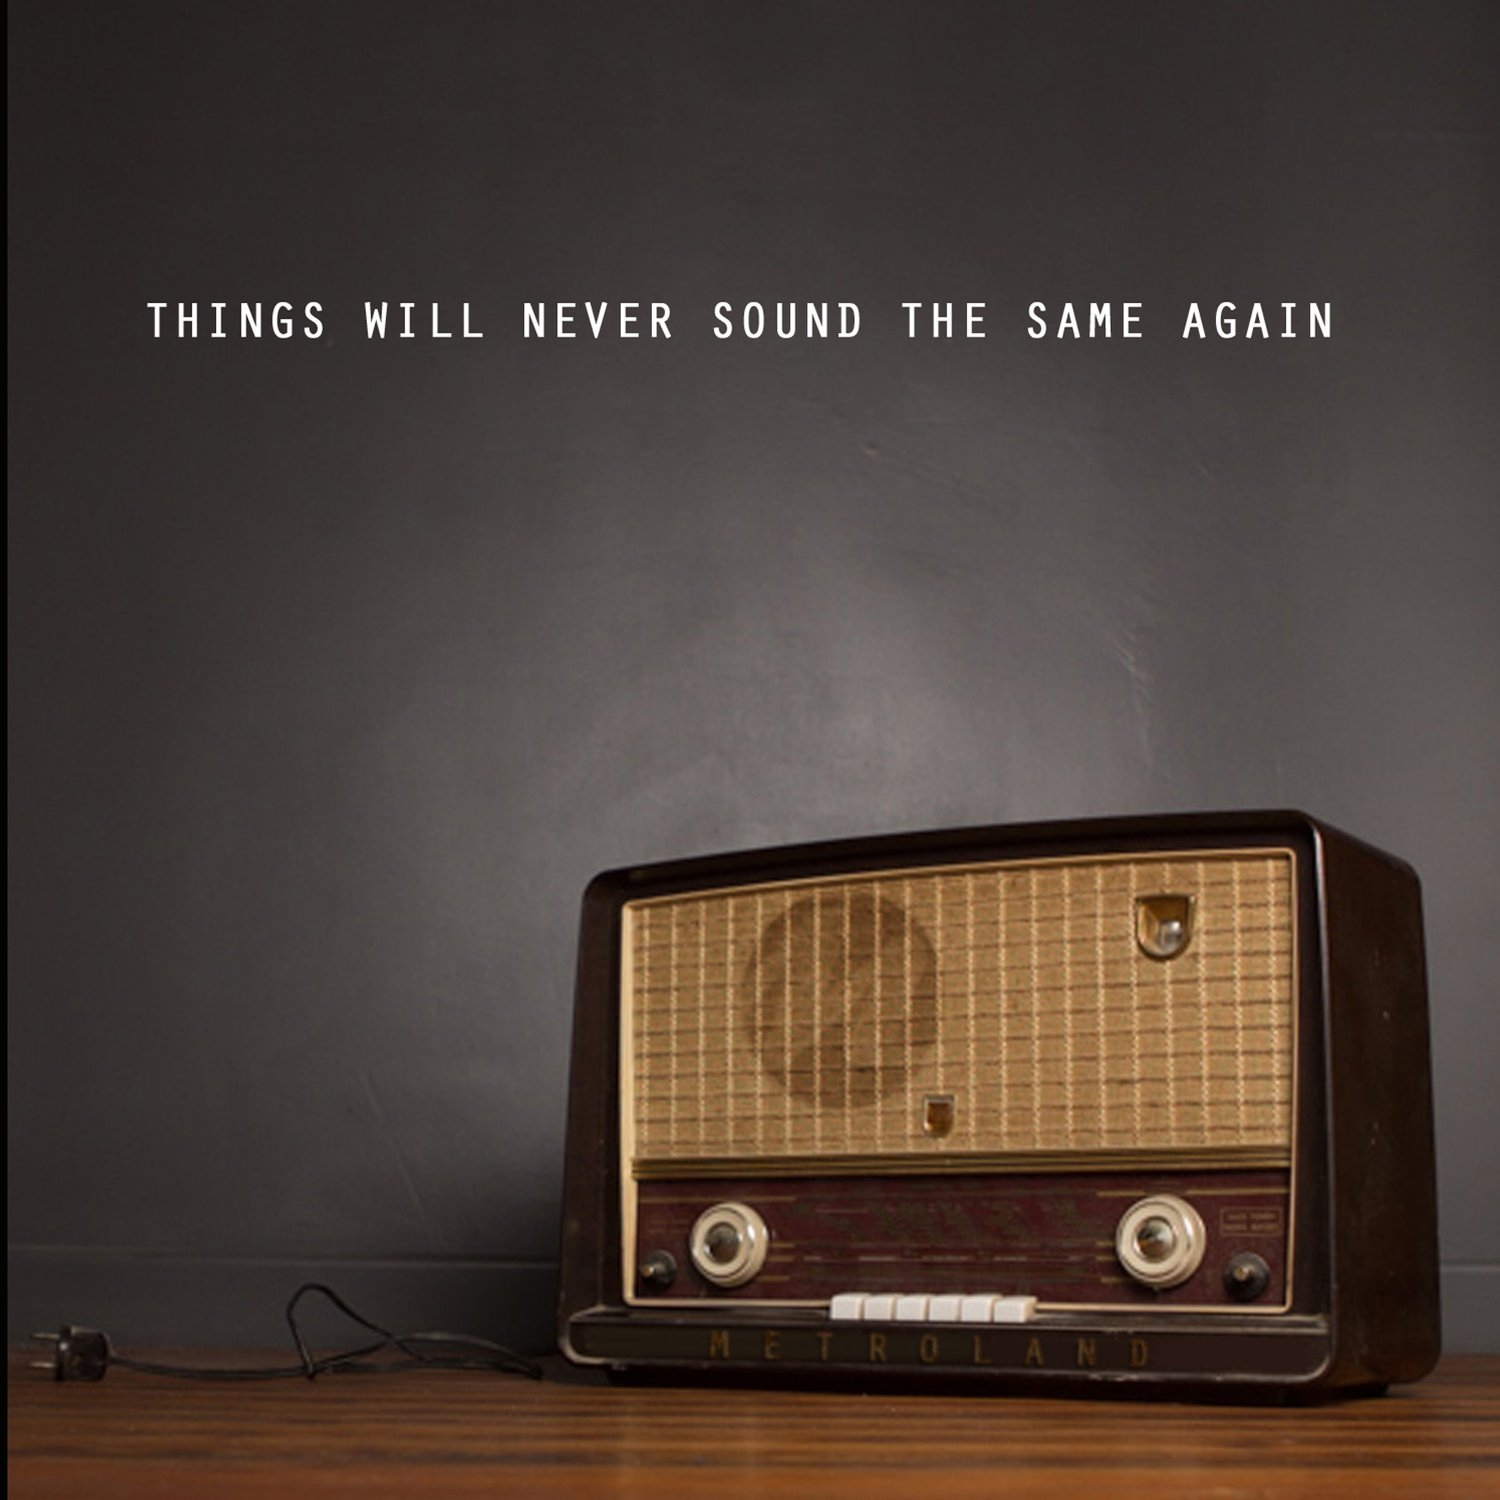 METROLAND Things Will Never Sound the Same Again CD 2016